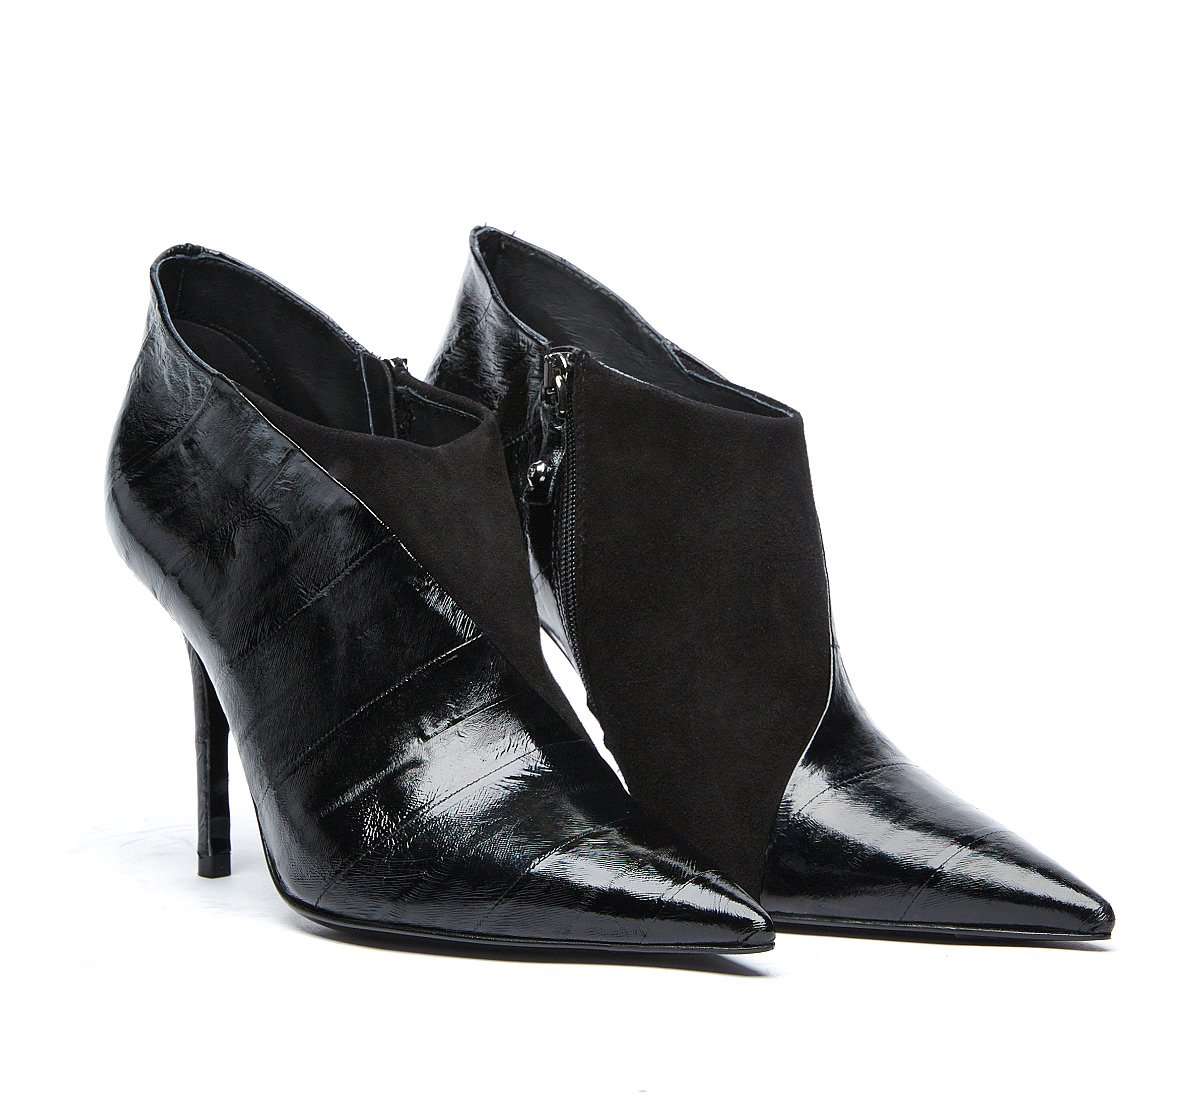 Ankle boots in soft calf leather